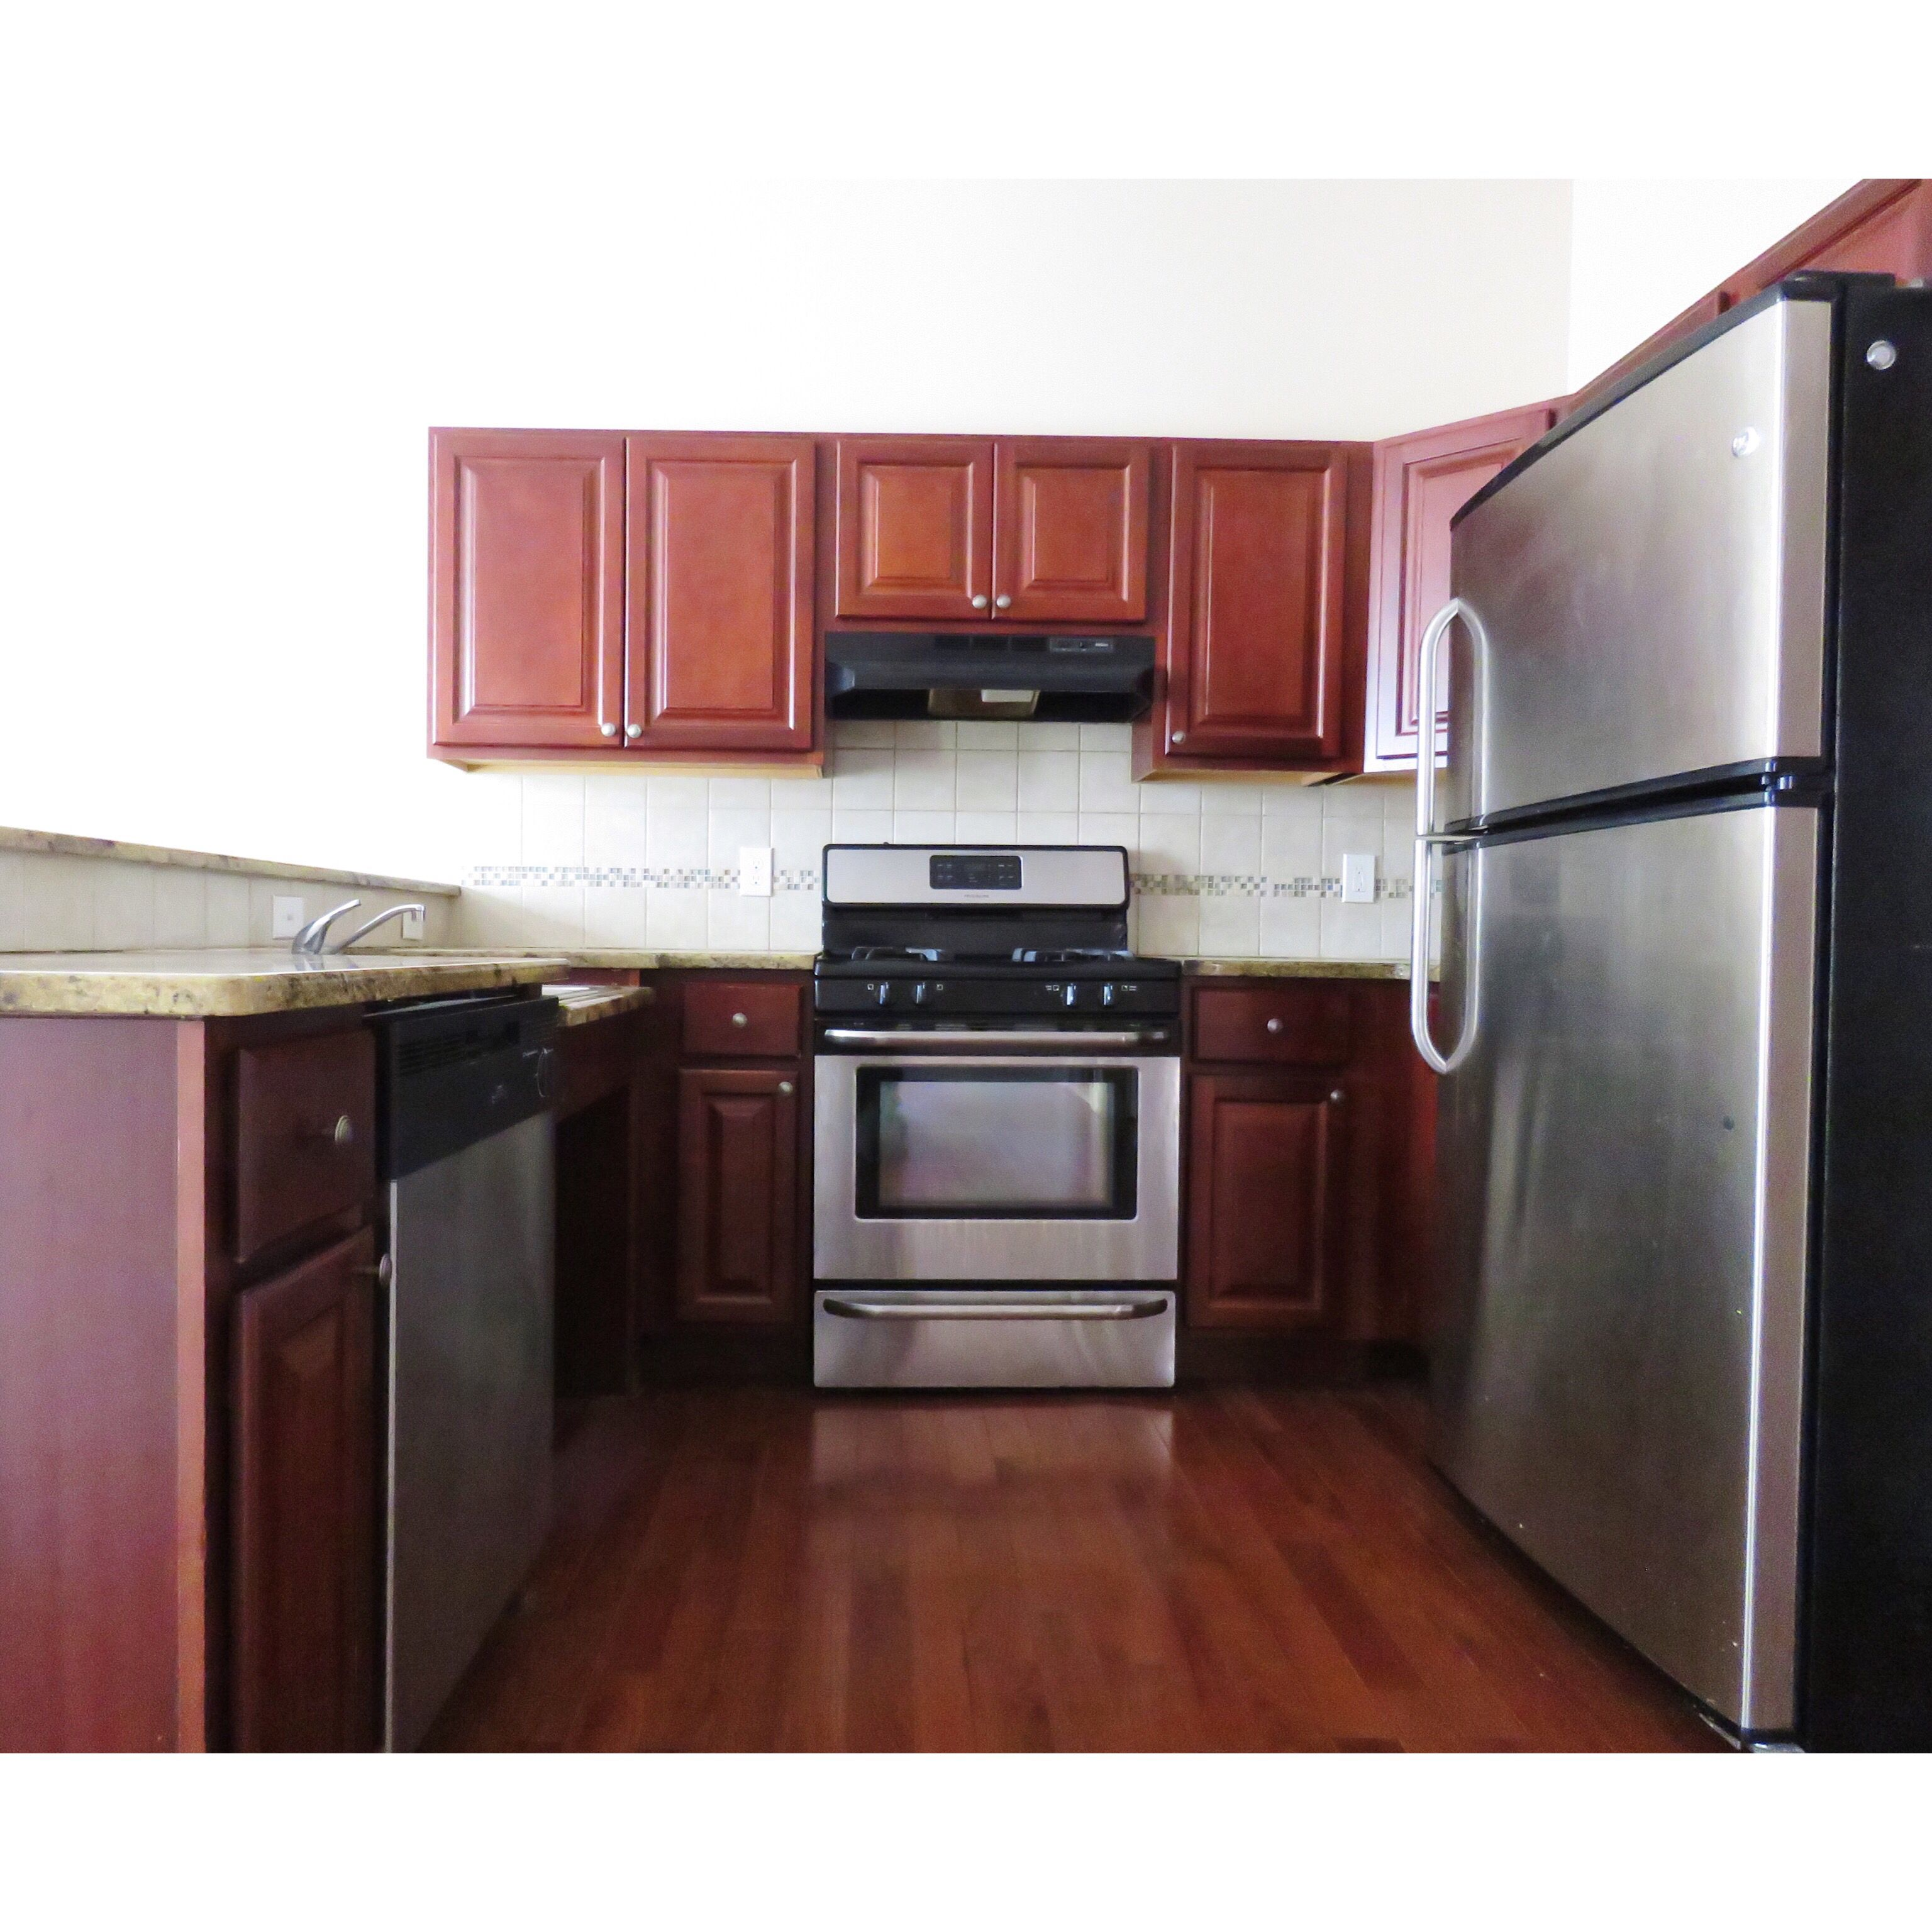 1 Bedroom Apartment Cheap: 1 Bedroom Apartment For Rent On Temple University's Campus